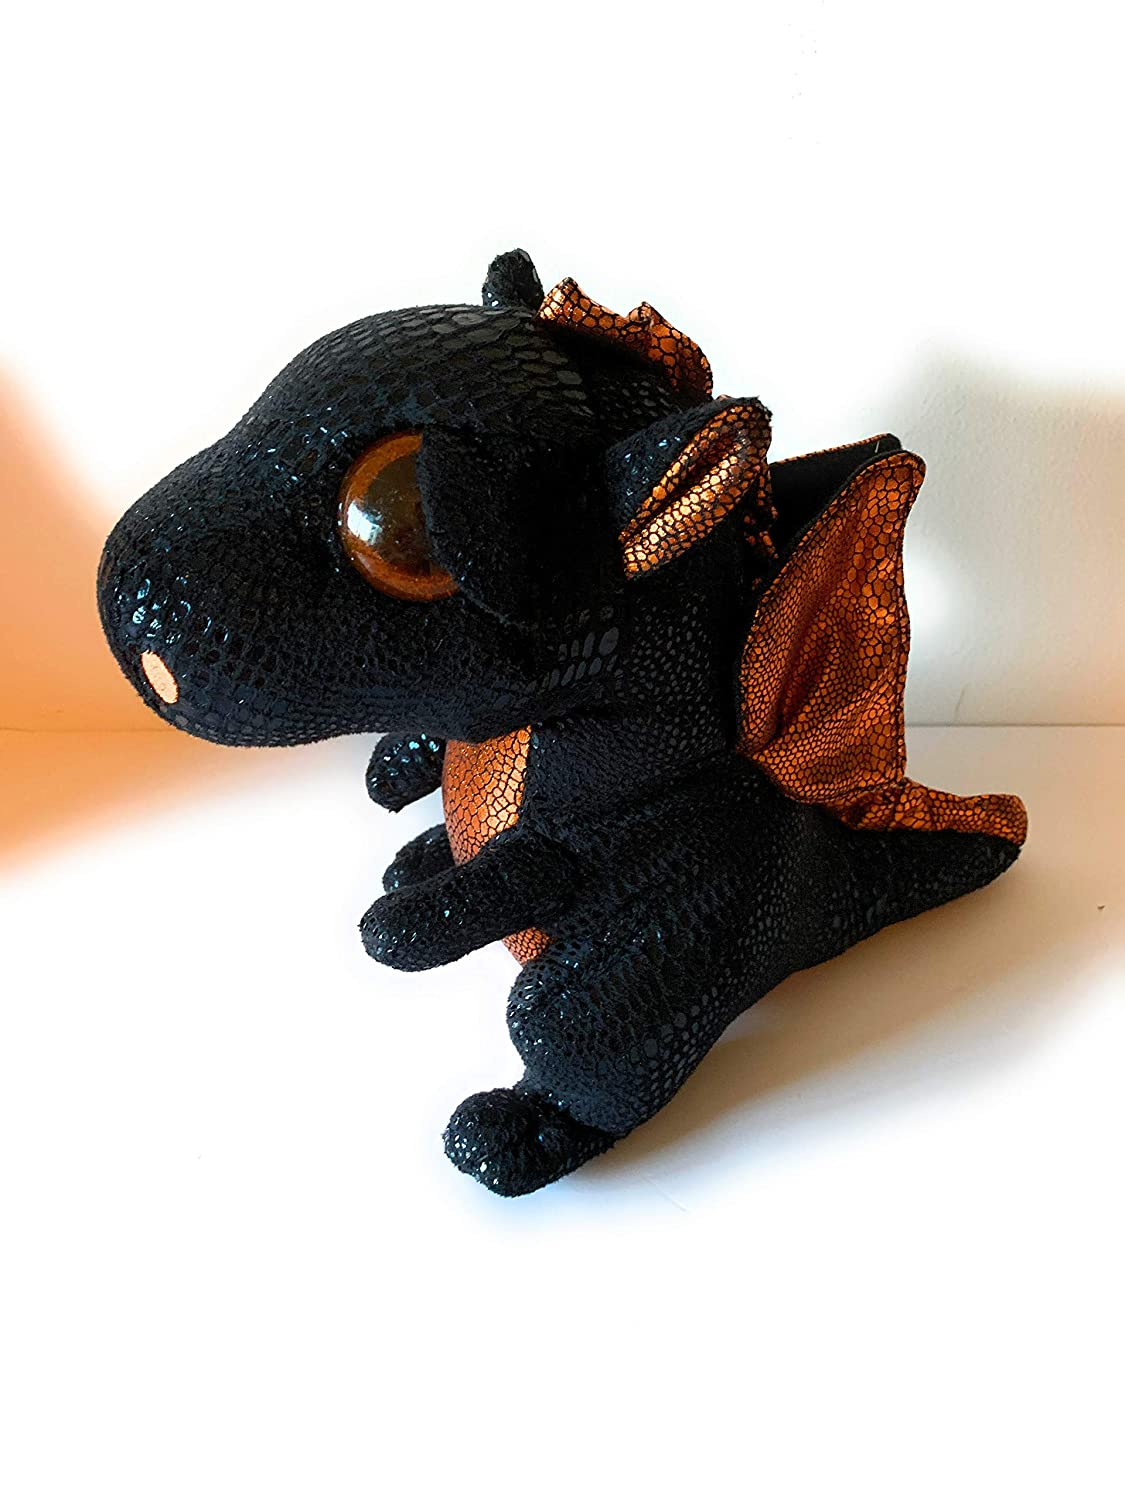 weighted buddy dragon 2 1//2 lbs sensory toy Weighted stuffed animal